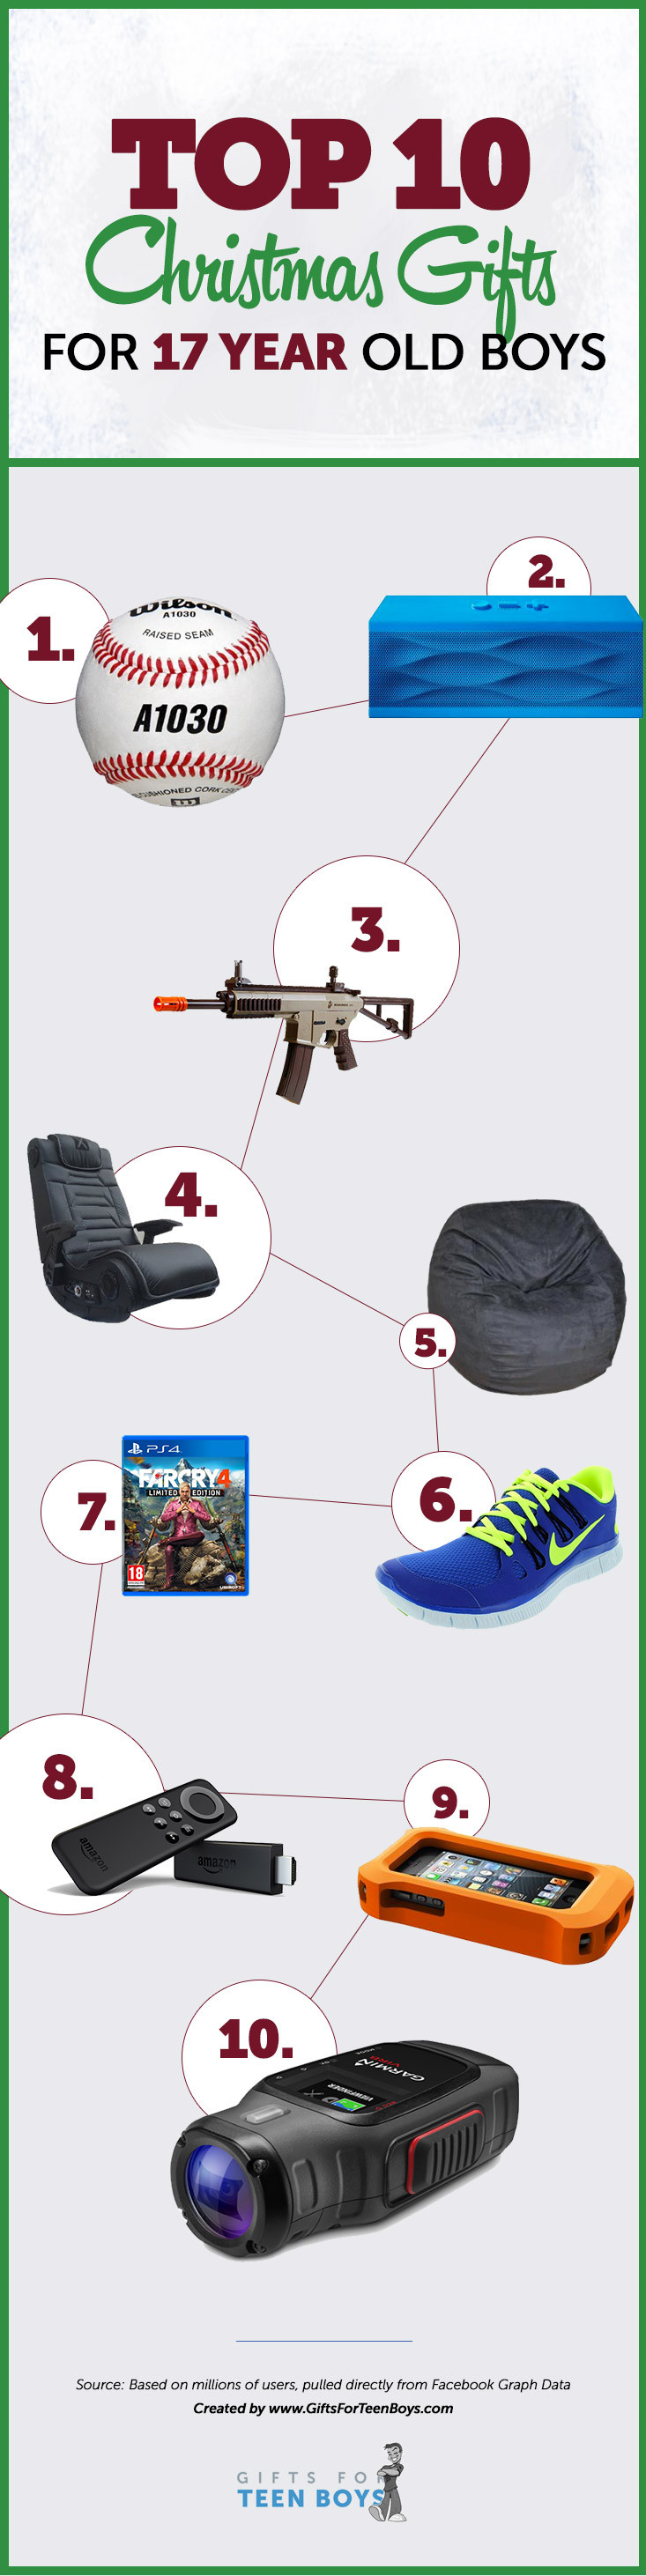 Best ideas about Gift Ideas For 17 Year Old Boys . Save or Pin Christmas Gifts 17 Year Old Boys Now.